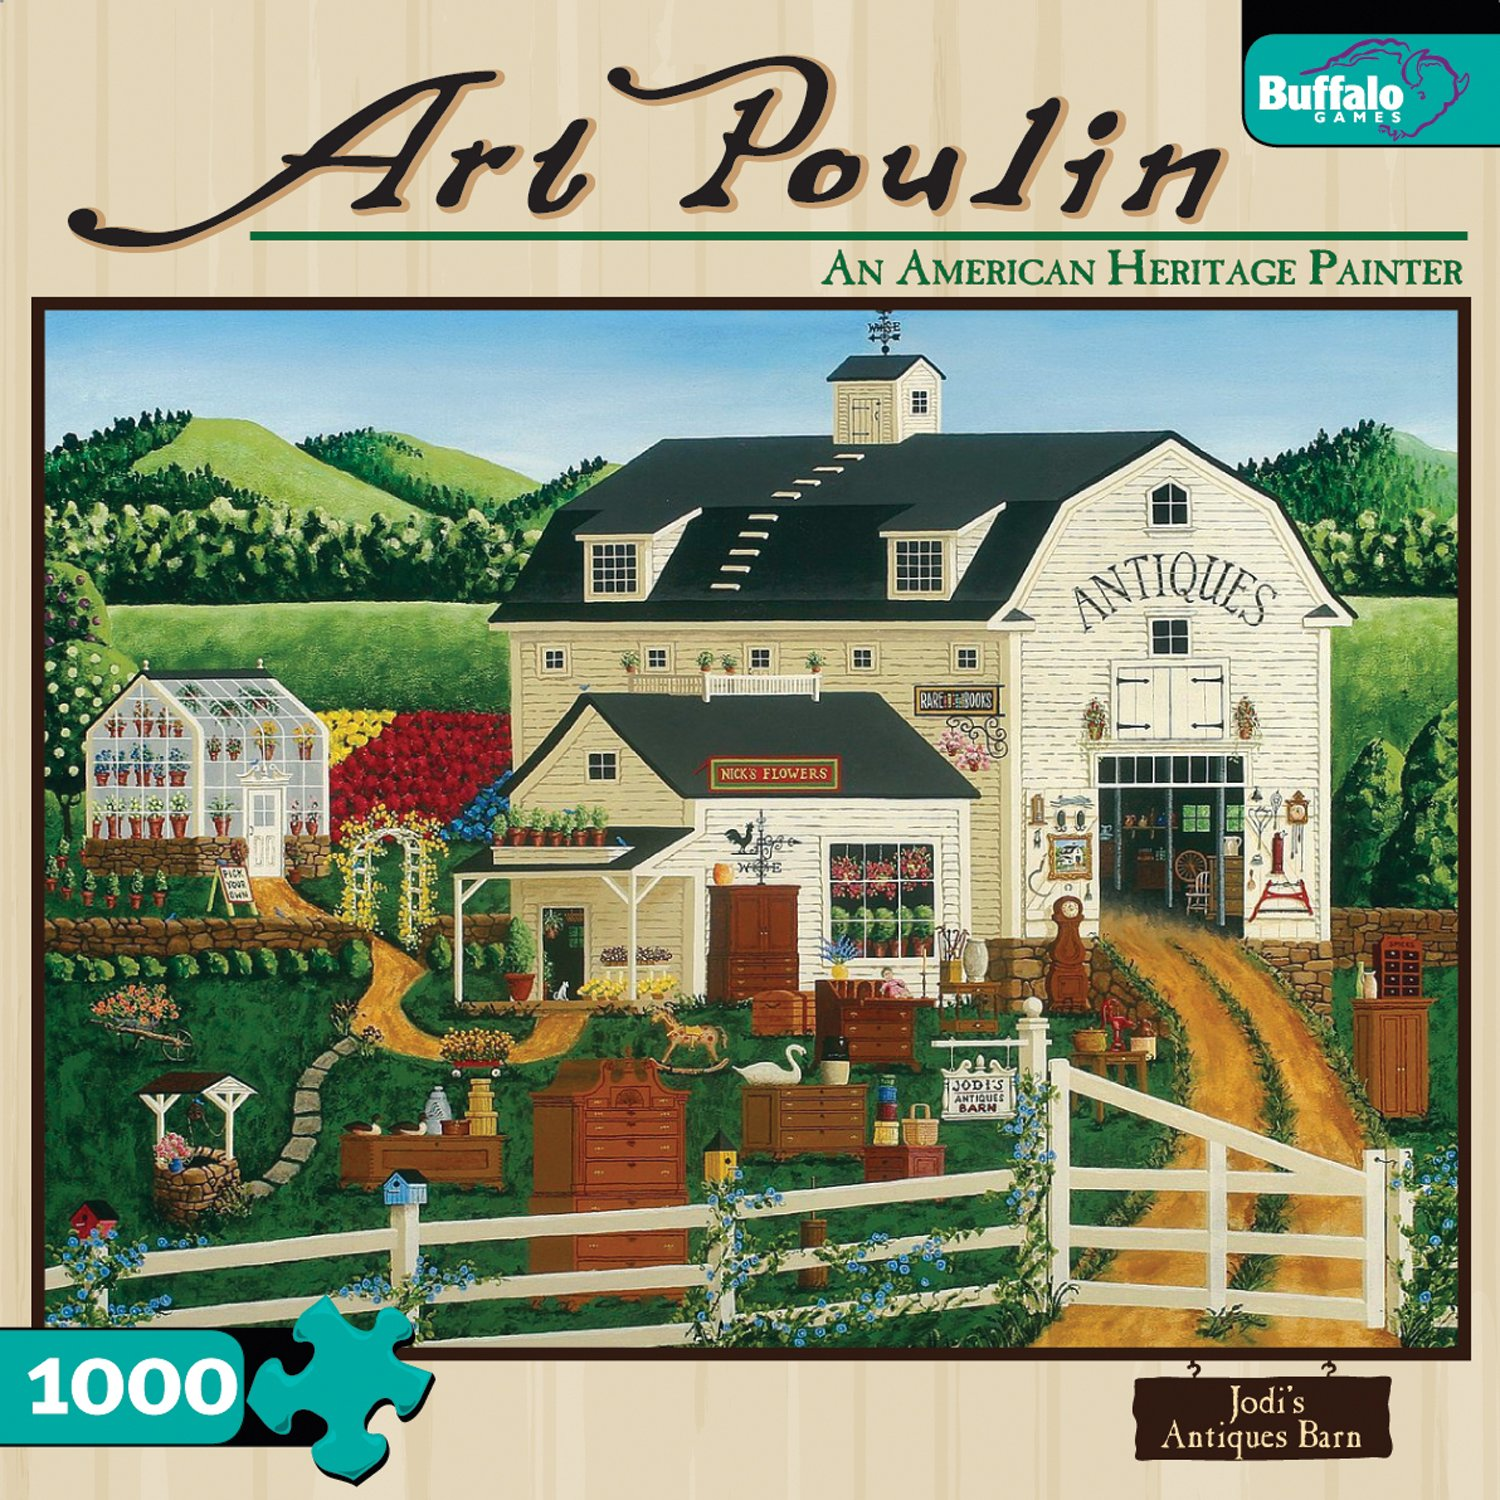 Art Poulin jodi' S Antiken Barn 1000 Piece Jigsaw Puzzle